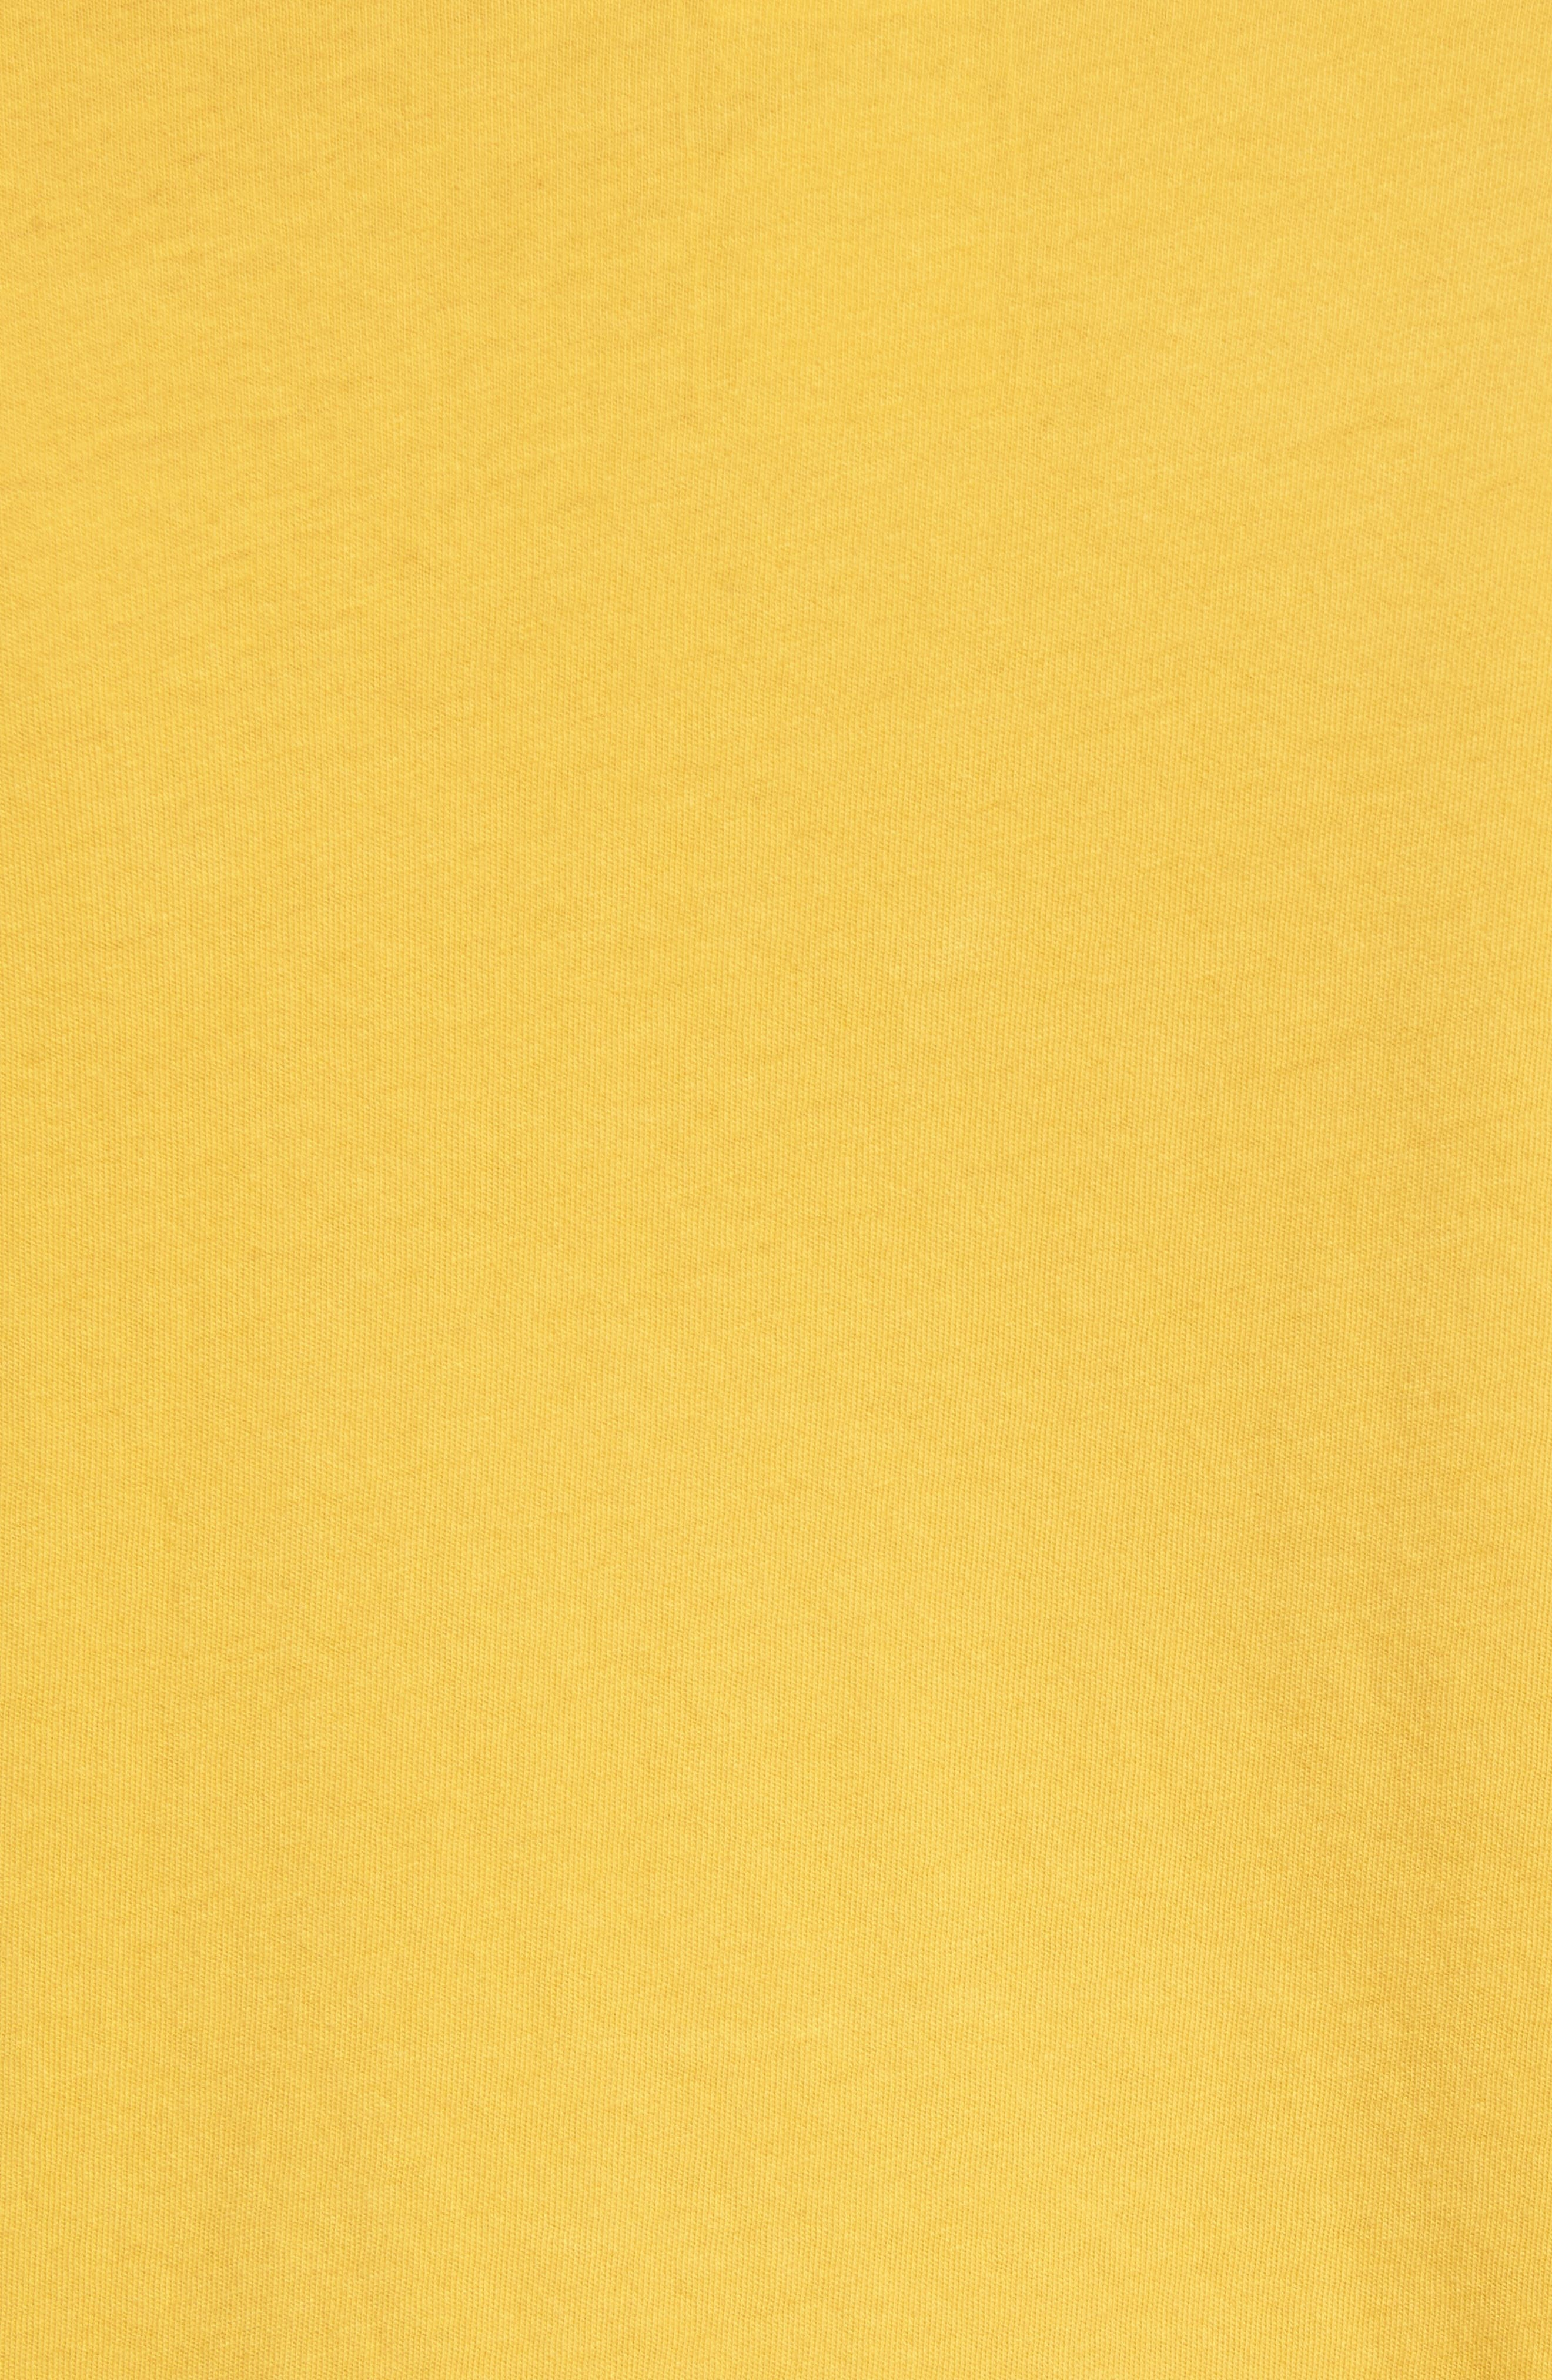 Well Loved Edge to Edge T-Shirt,                             Alternate thumbnail 5, color,                             Olivenite Yellow